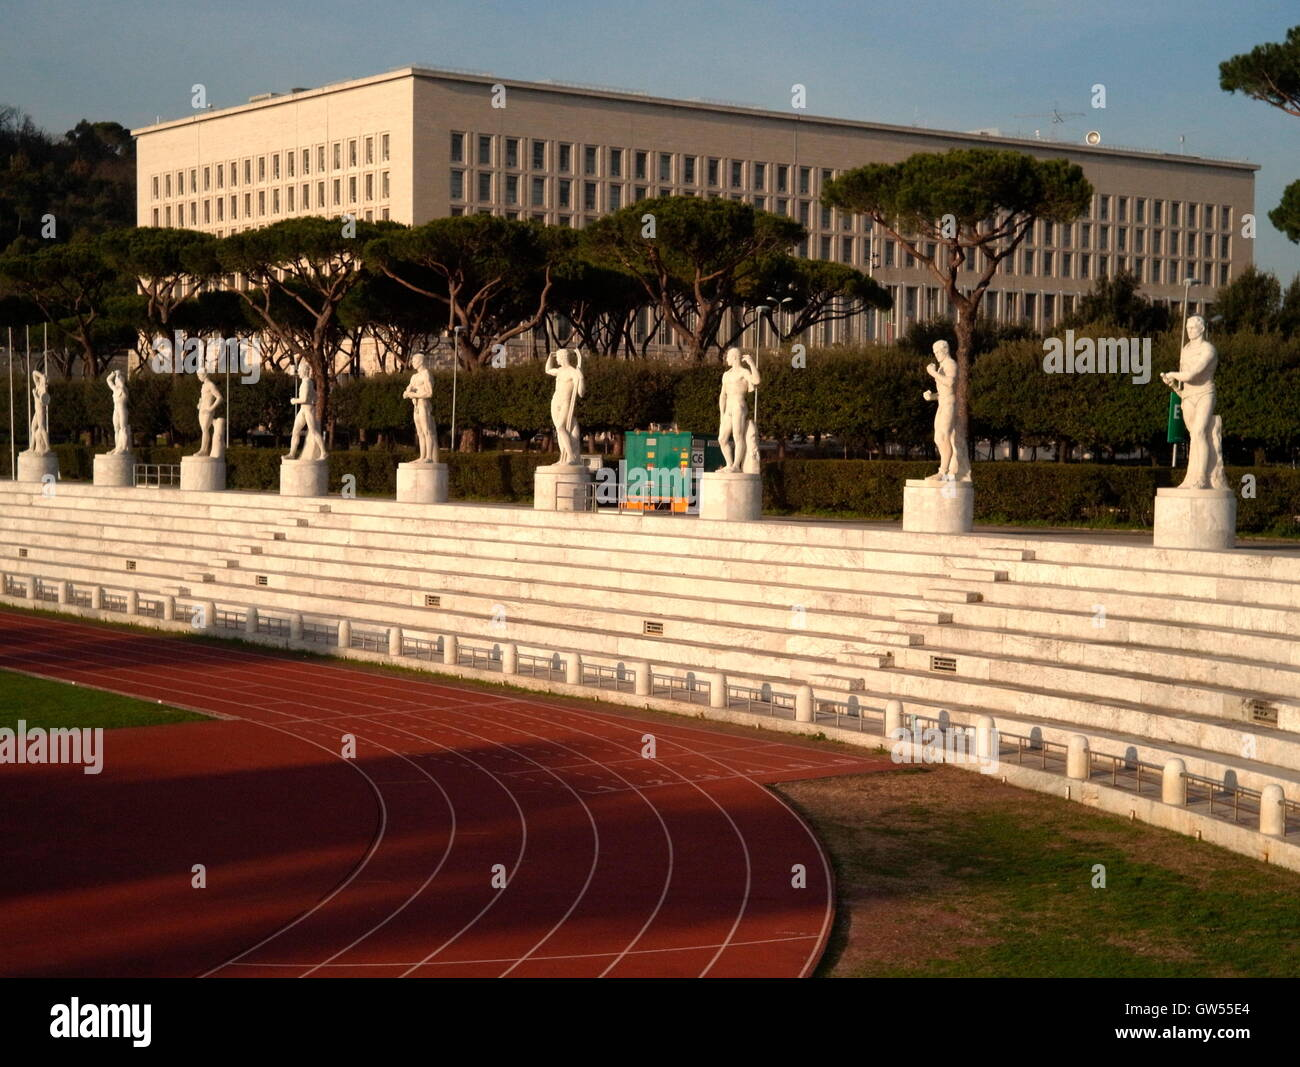 AJAXNETPHOTO. 2015. ROME, ITALY. - MINISTRY OF FOREIGN AFFAIRS - PALAZZO DELLA FARNESINA, BUILT BETWEEN 1935 - 1959 - Stock Image